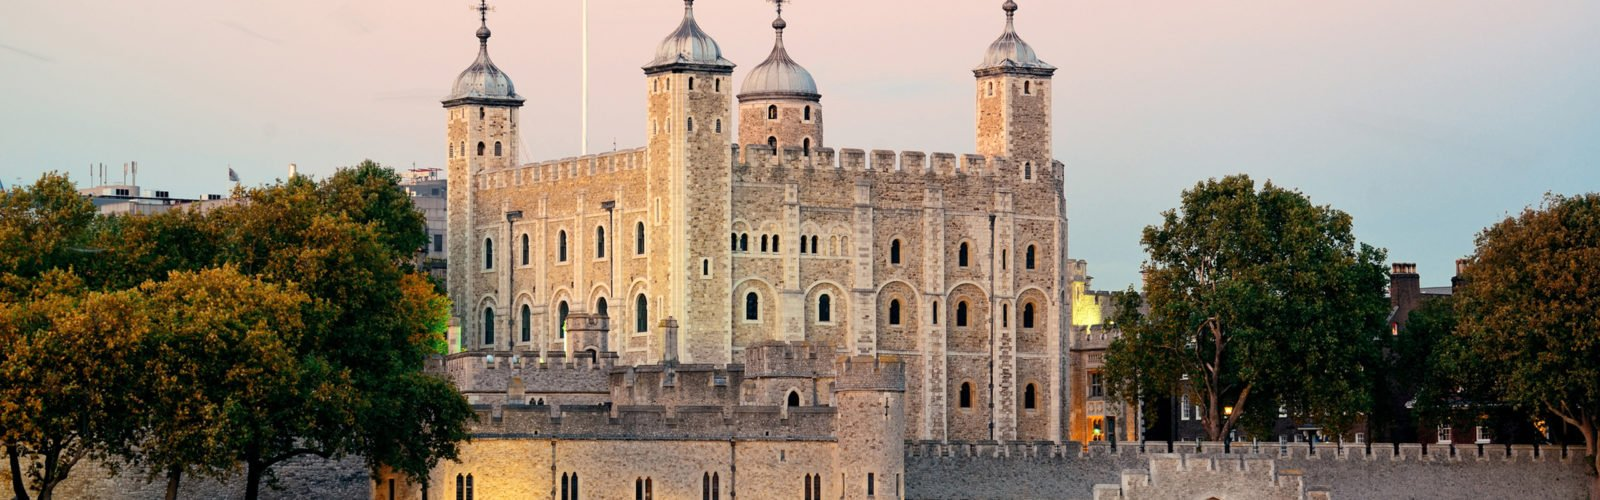 tower-of-london-sunset